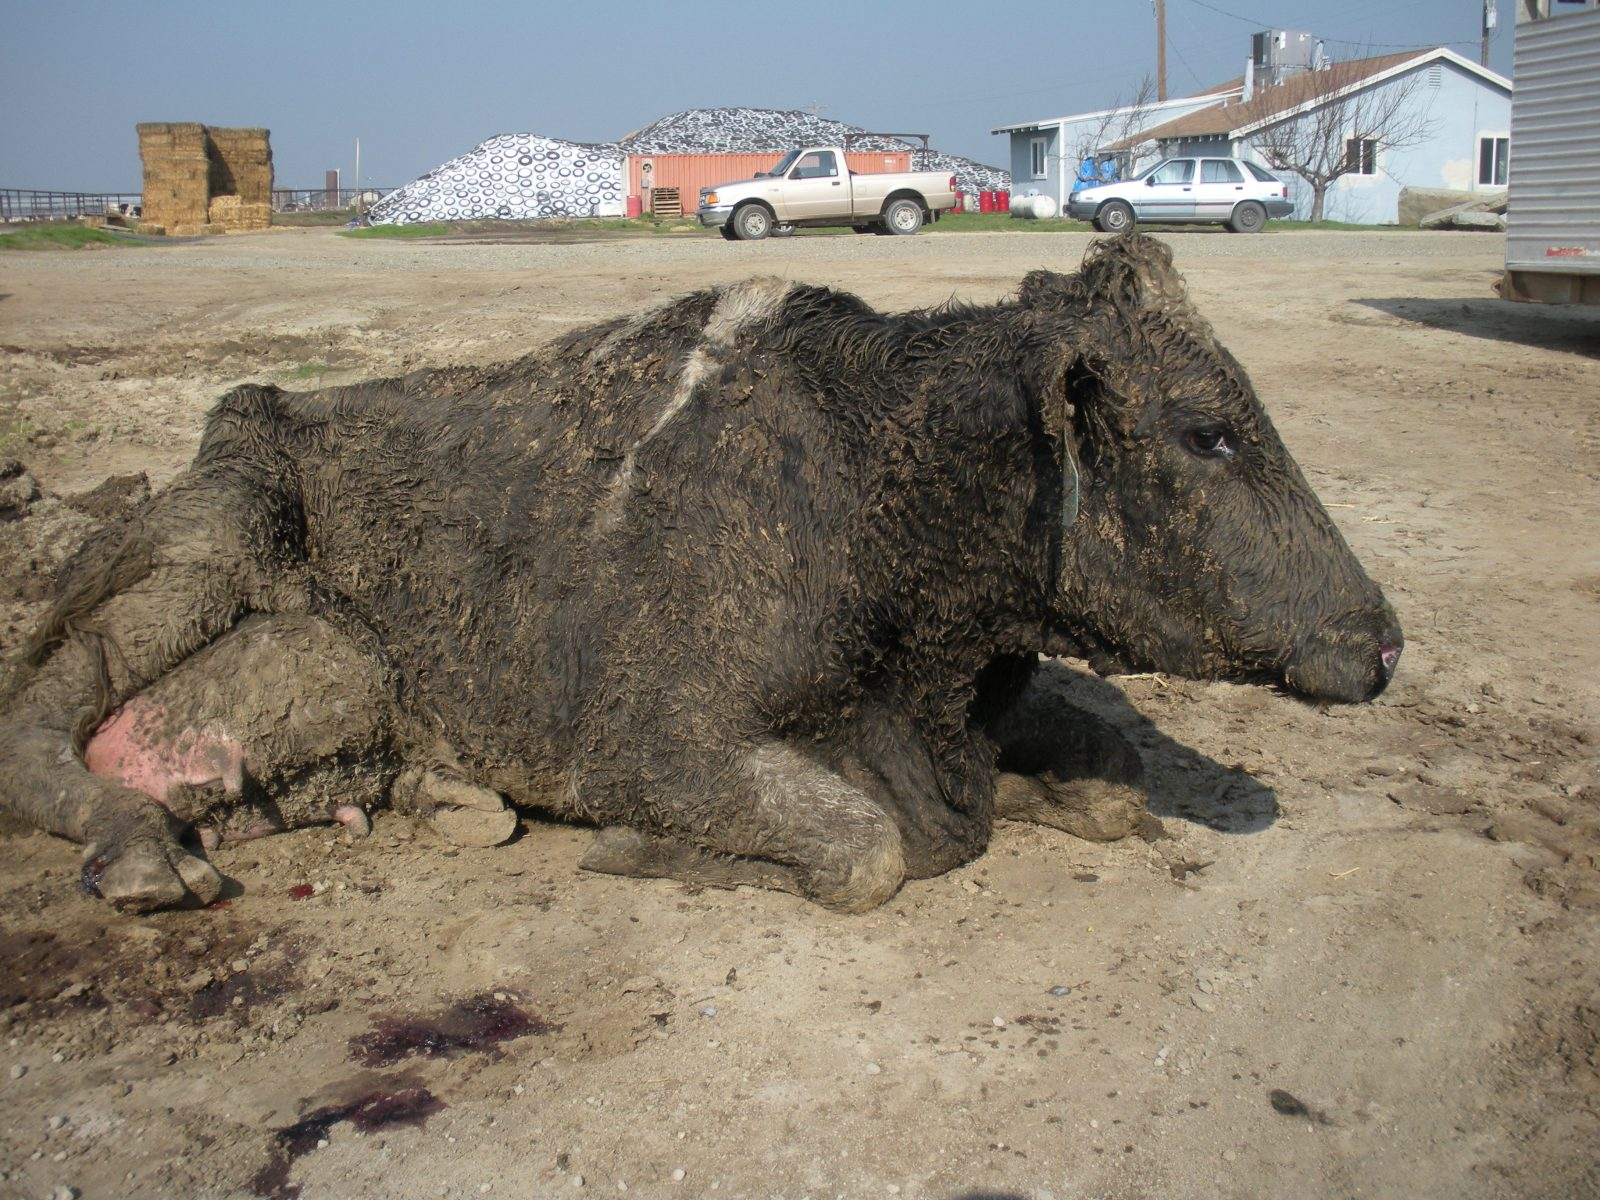 A downed cow in California.